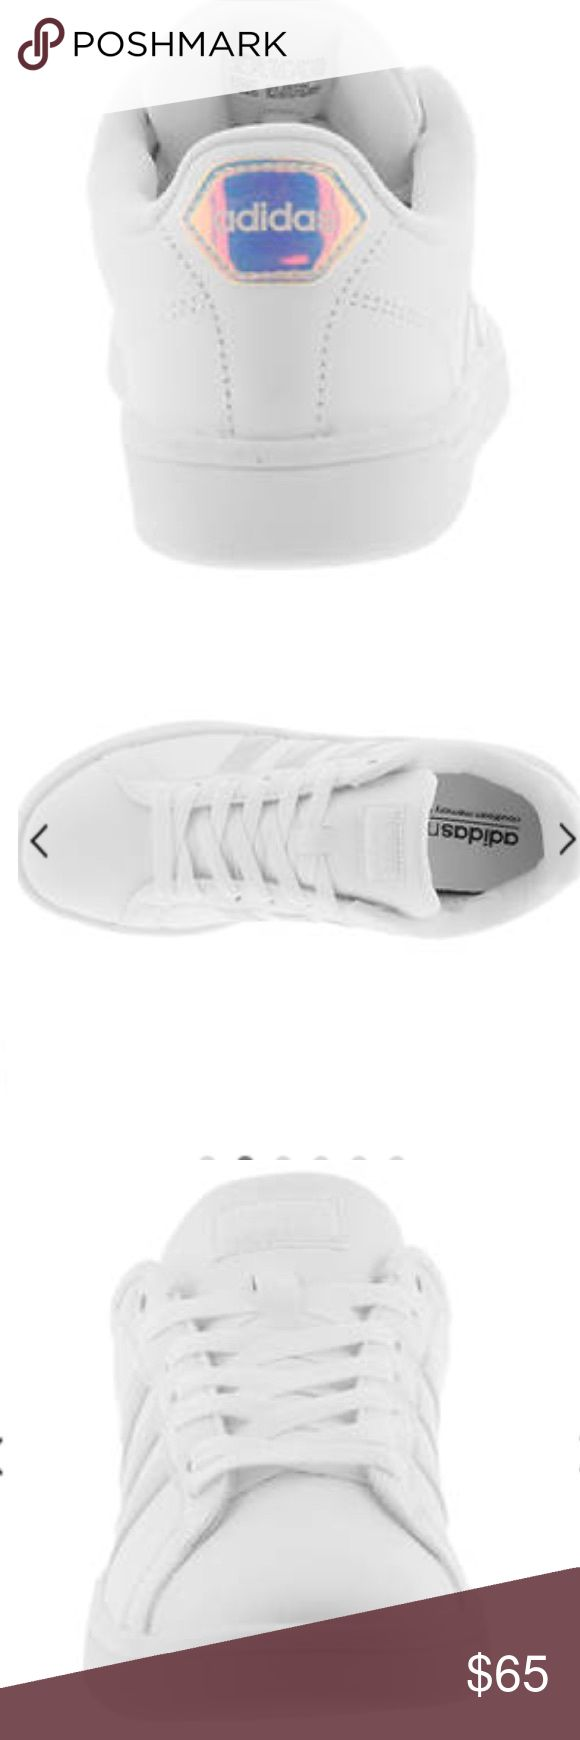 Adidas NWB classic style Cloudfoams Super classic style of Adidas we all know and love. All white with silver striping and silver Adidas logo on the back. They also have memory foam inside 😍 NWB adidas Shoes Sneakers